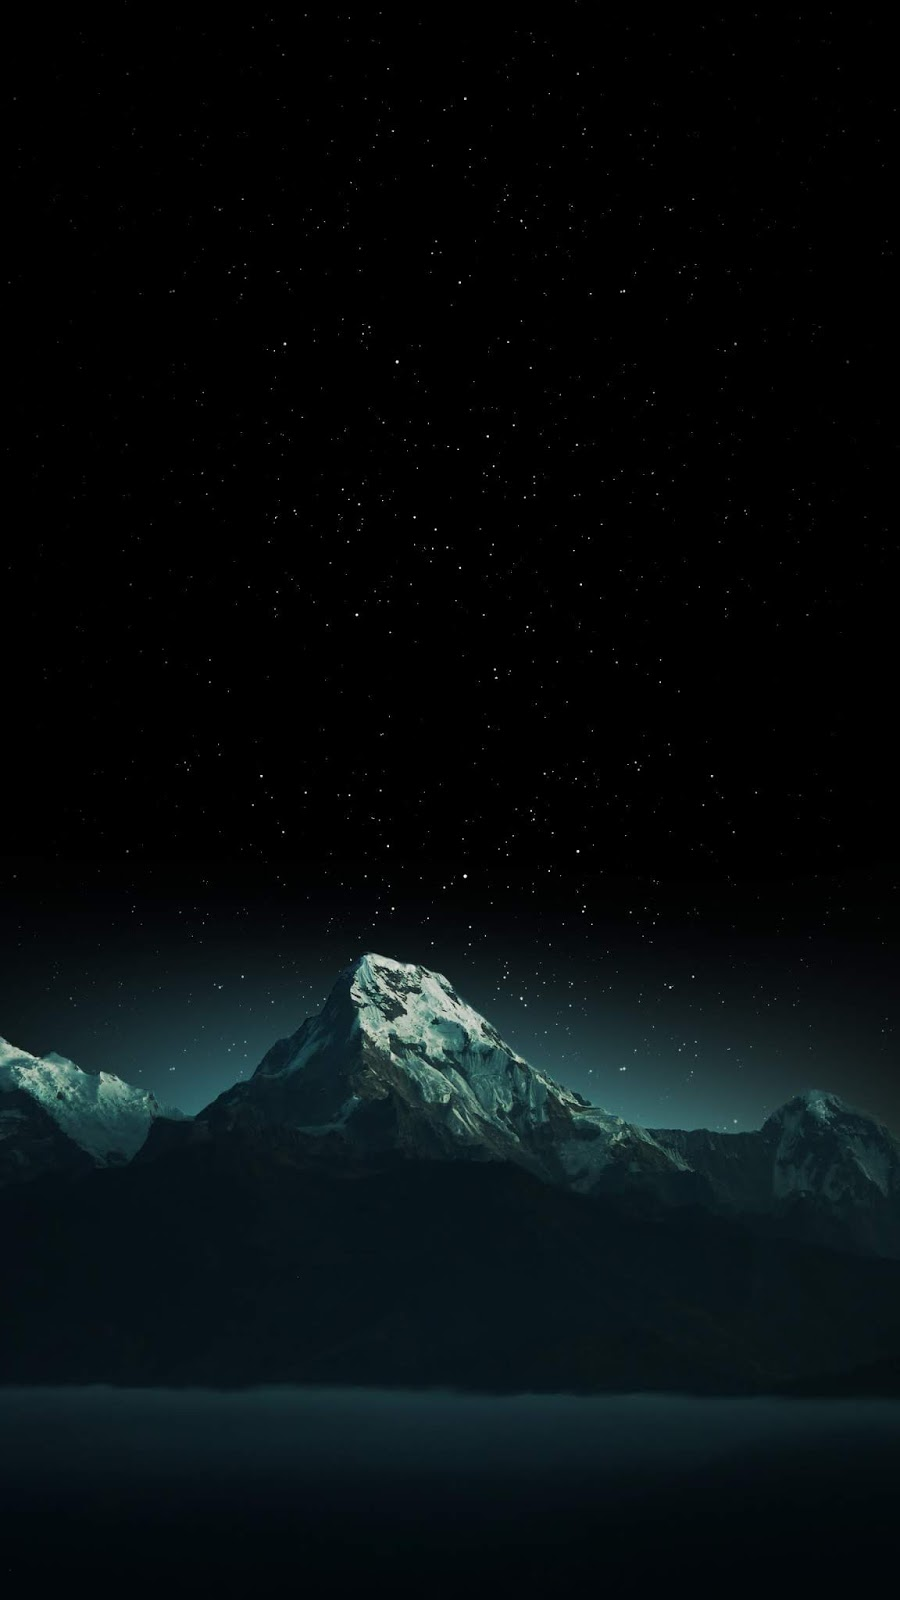 Mountain in the starry night